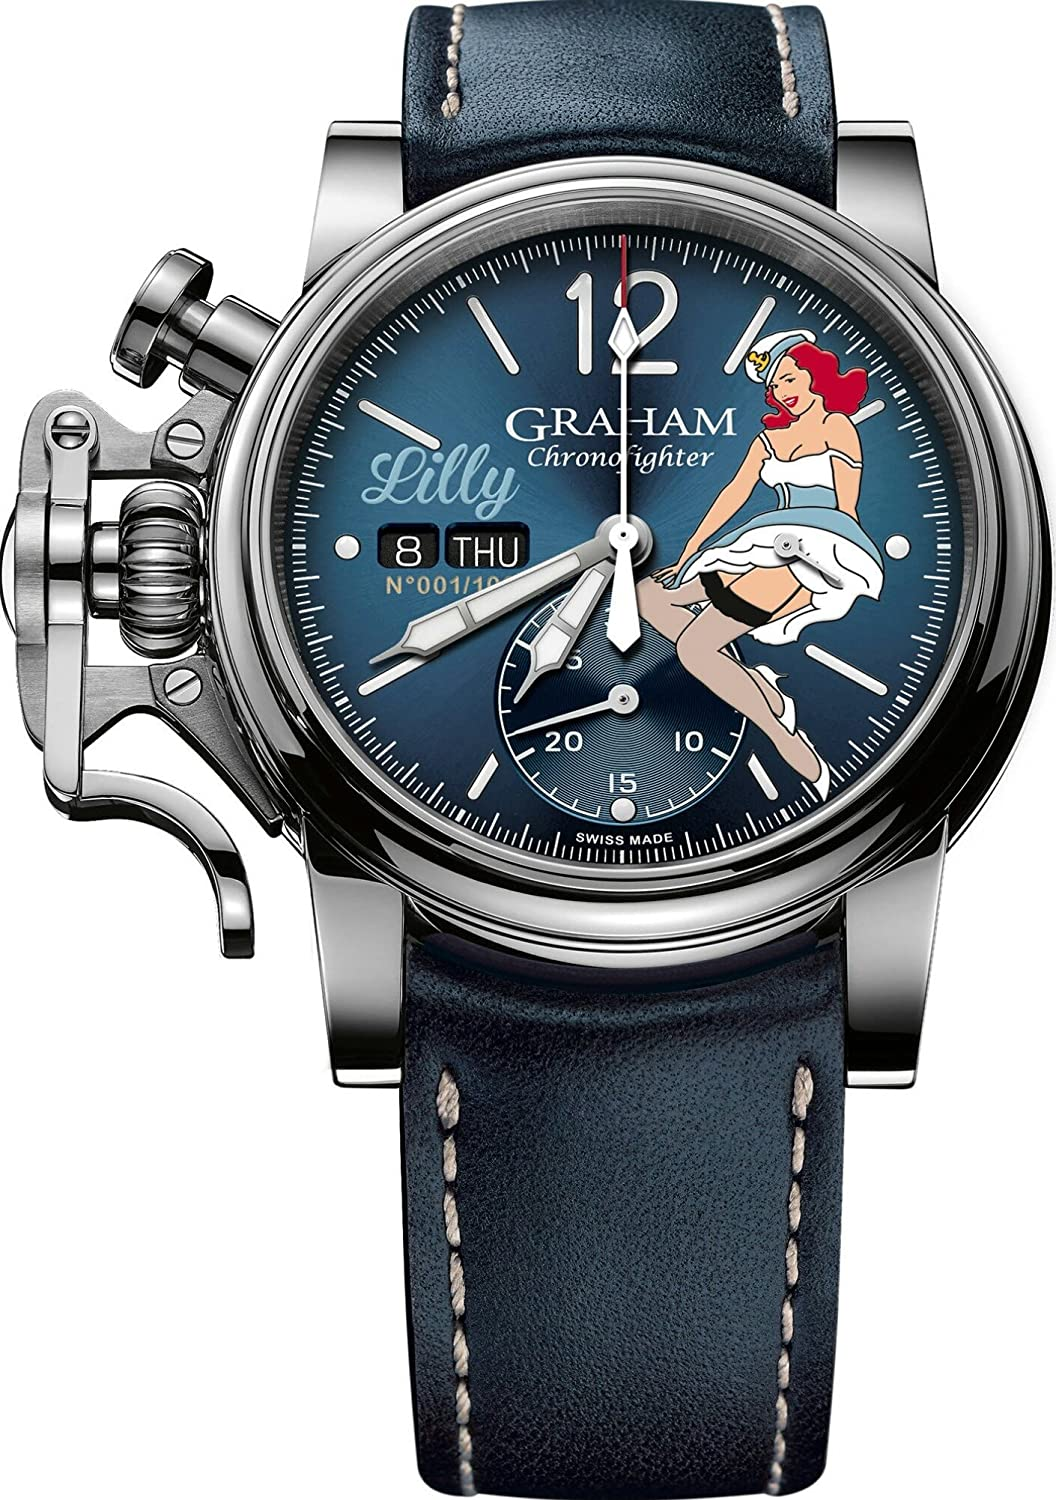 Graham Watch Chronofighter Vintage Nose Art WWII Pin Up Girl Lilly Limited Edition 2CVAS.U05A.L129S